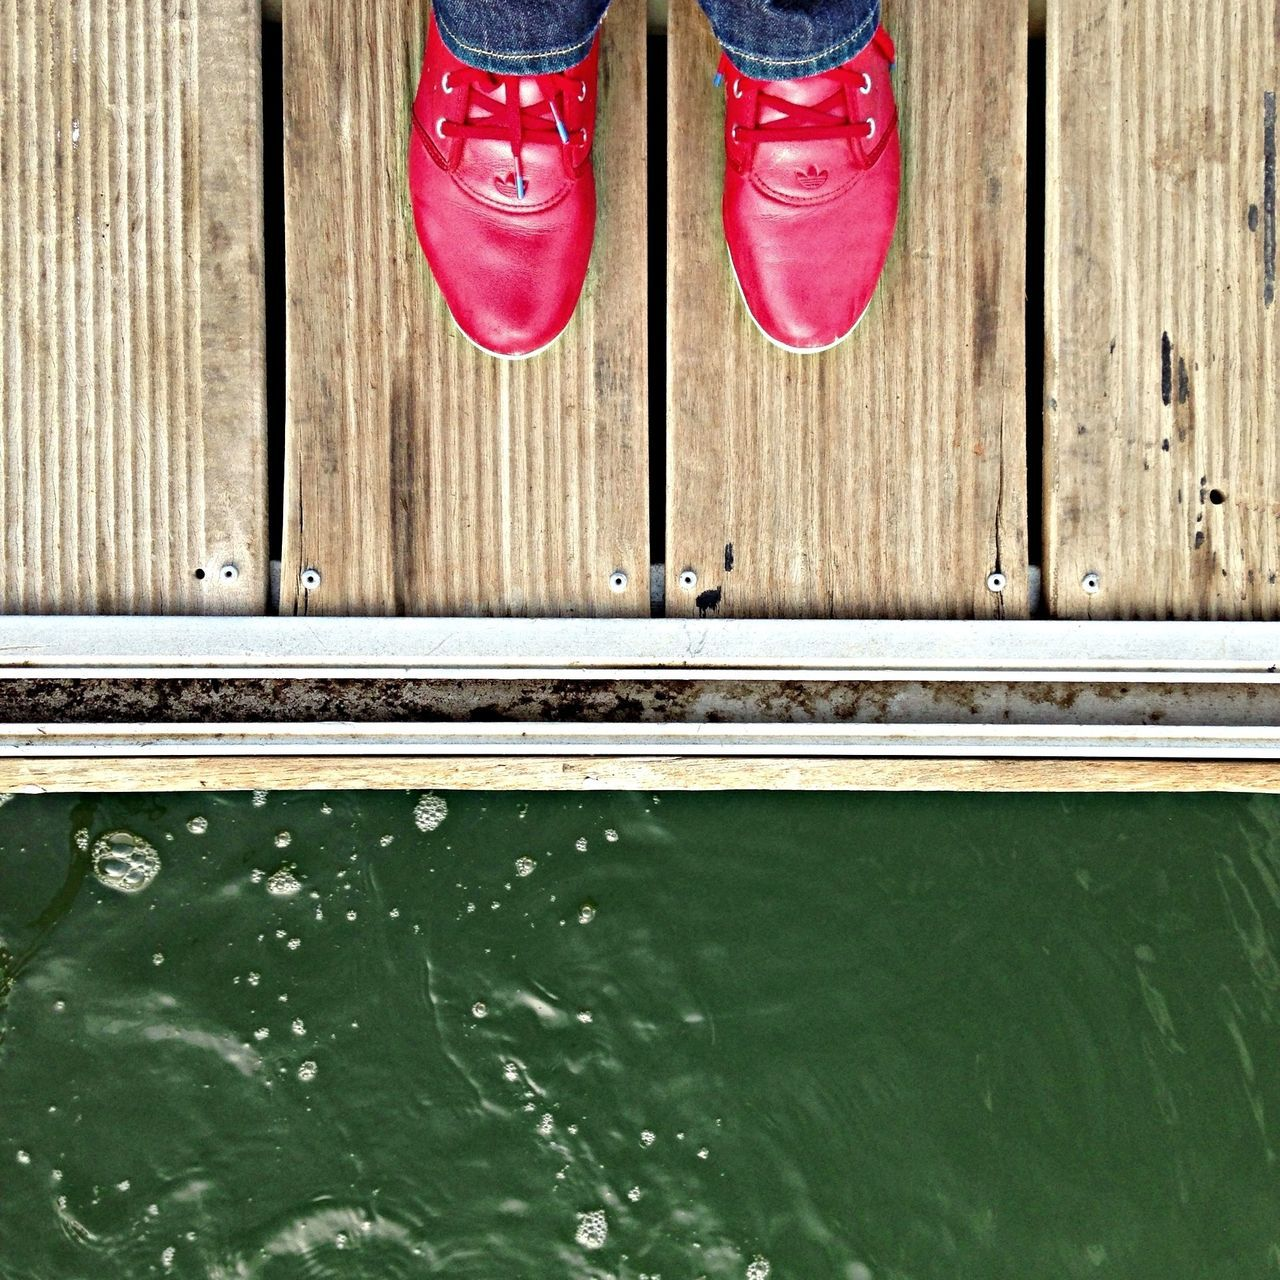 Fromwhereistand WeAreJuxt.com AMPt_community TheMinimals (less Edit Juxt Photography)